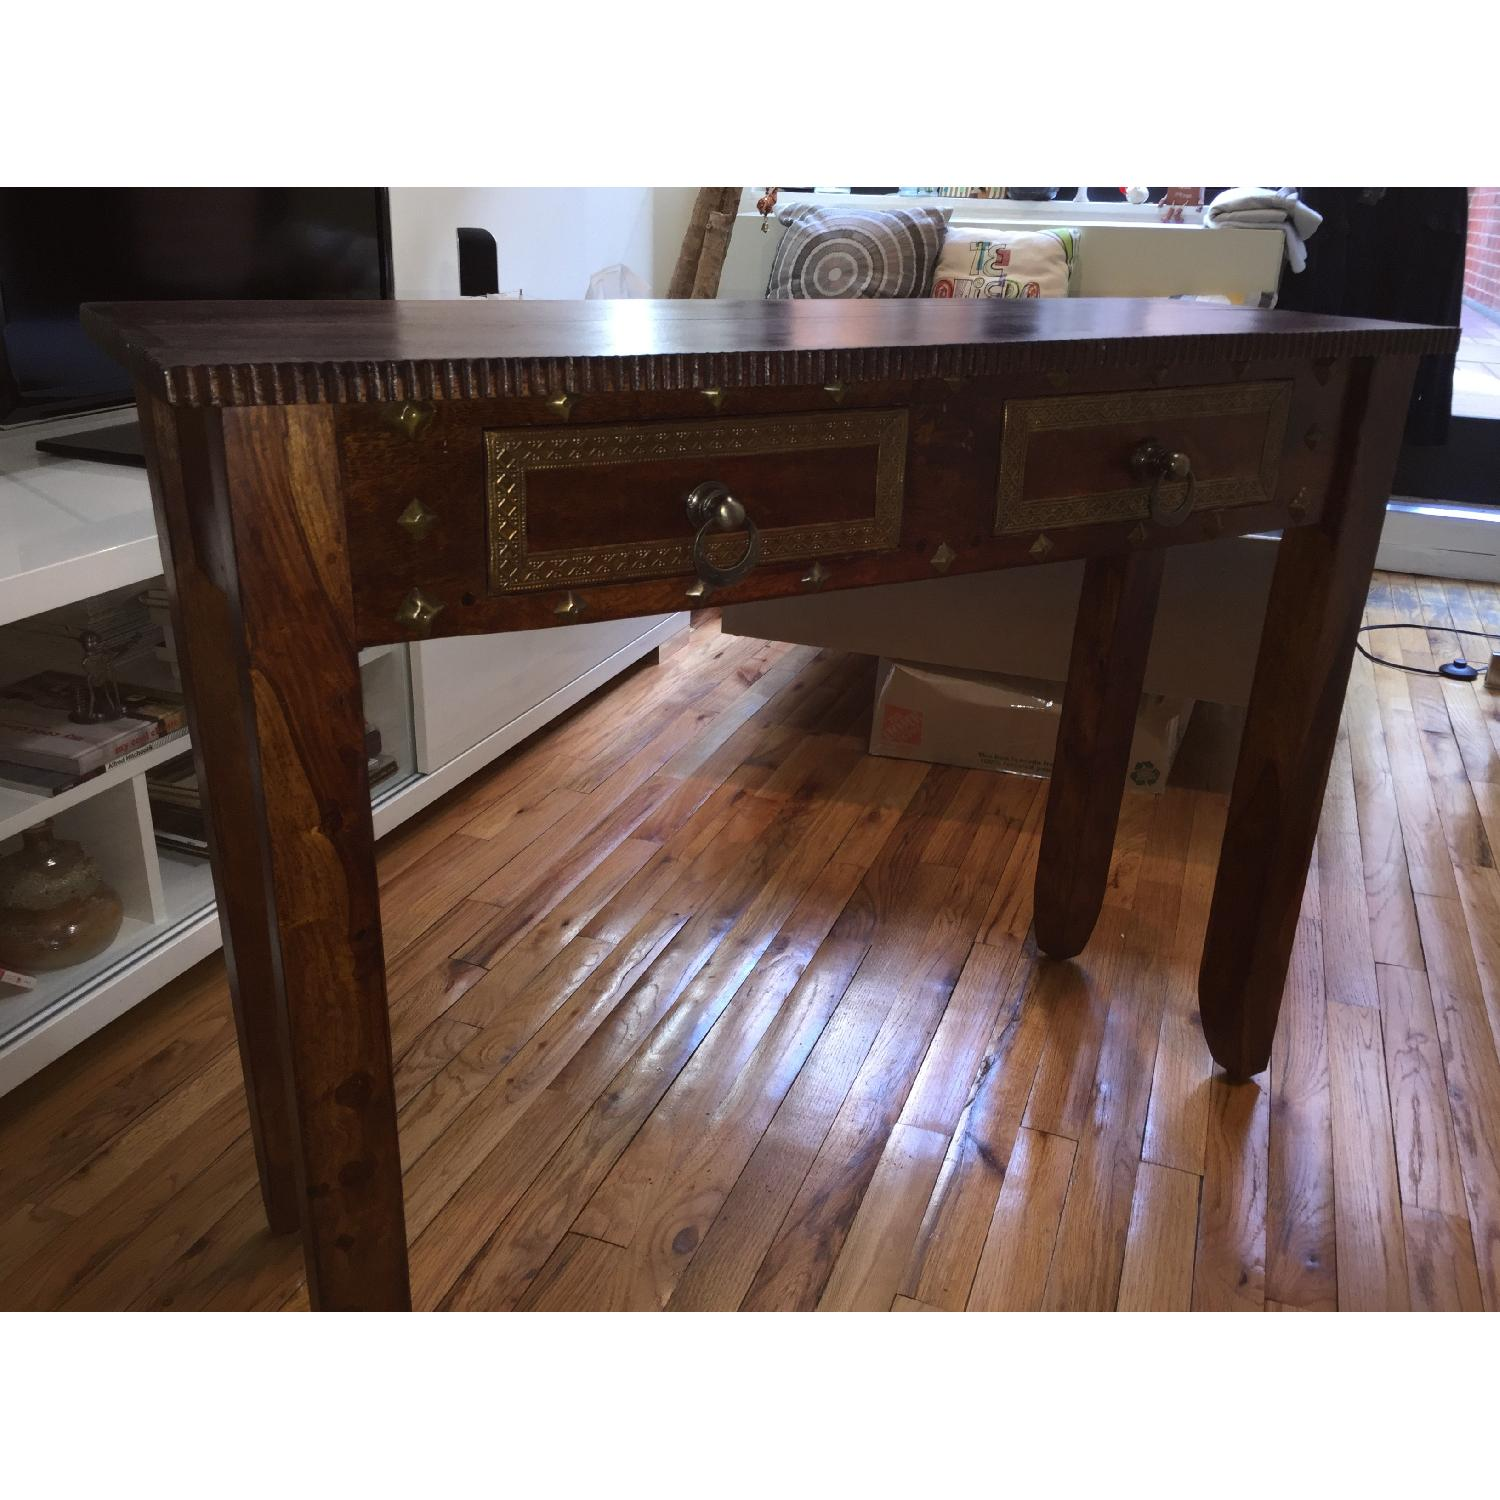 Pier 1 Vintage Heera Indian Handcrafted Console Table - image-5